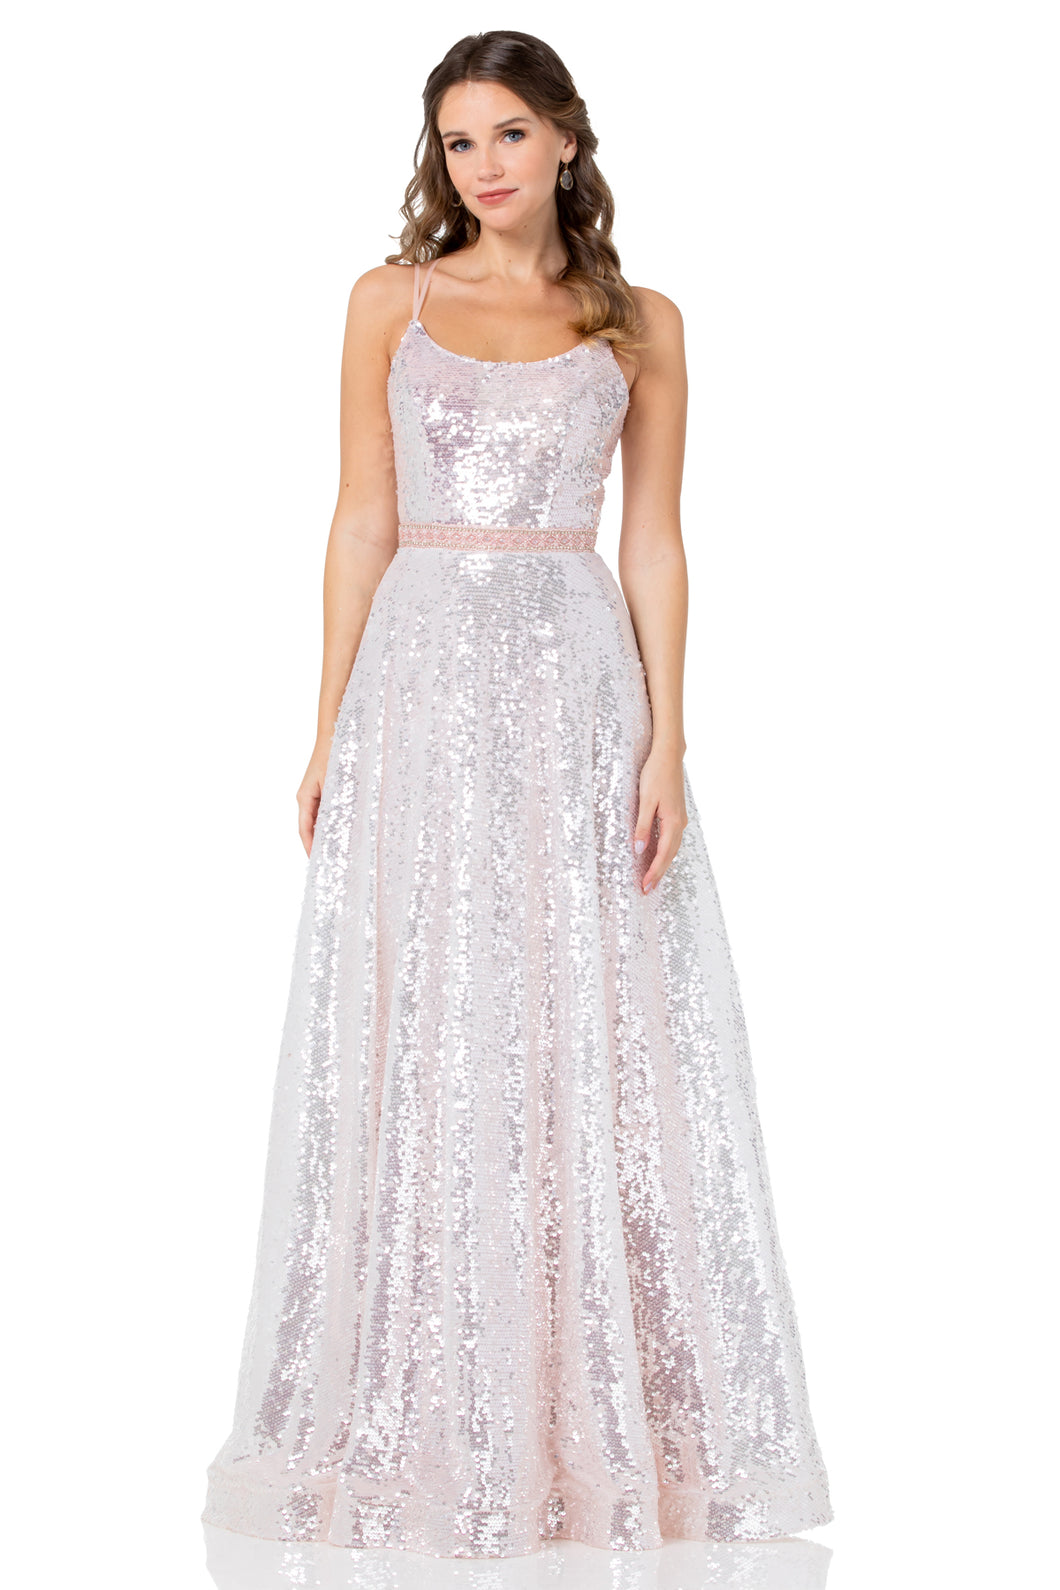 BC DA398 - A-Line Fully Sequined Ball Gown With Straight Neckline And Lace Up Corset Back - Diggz Prom